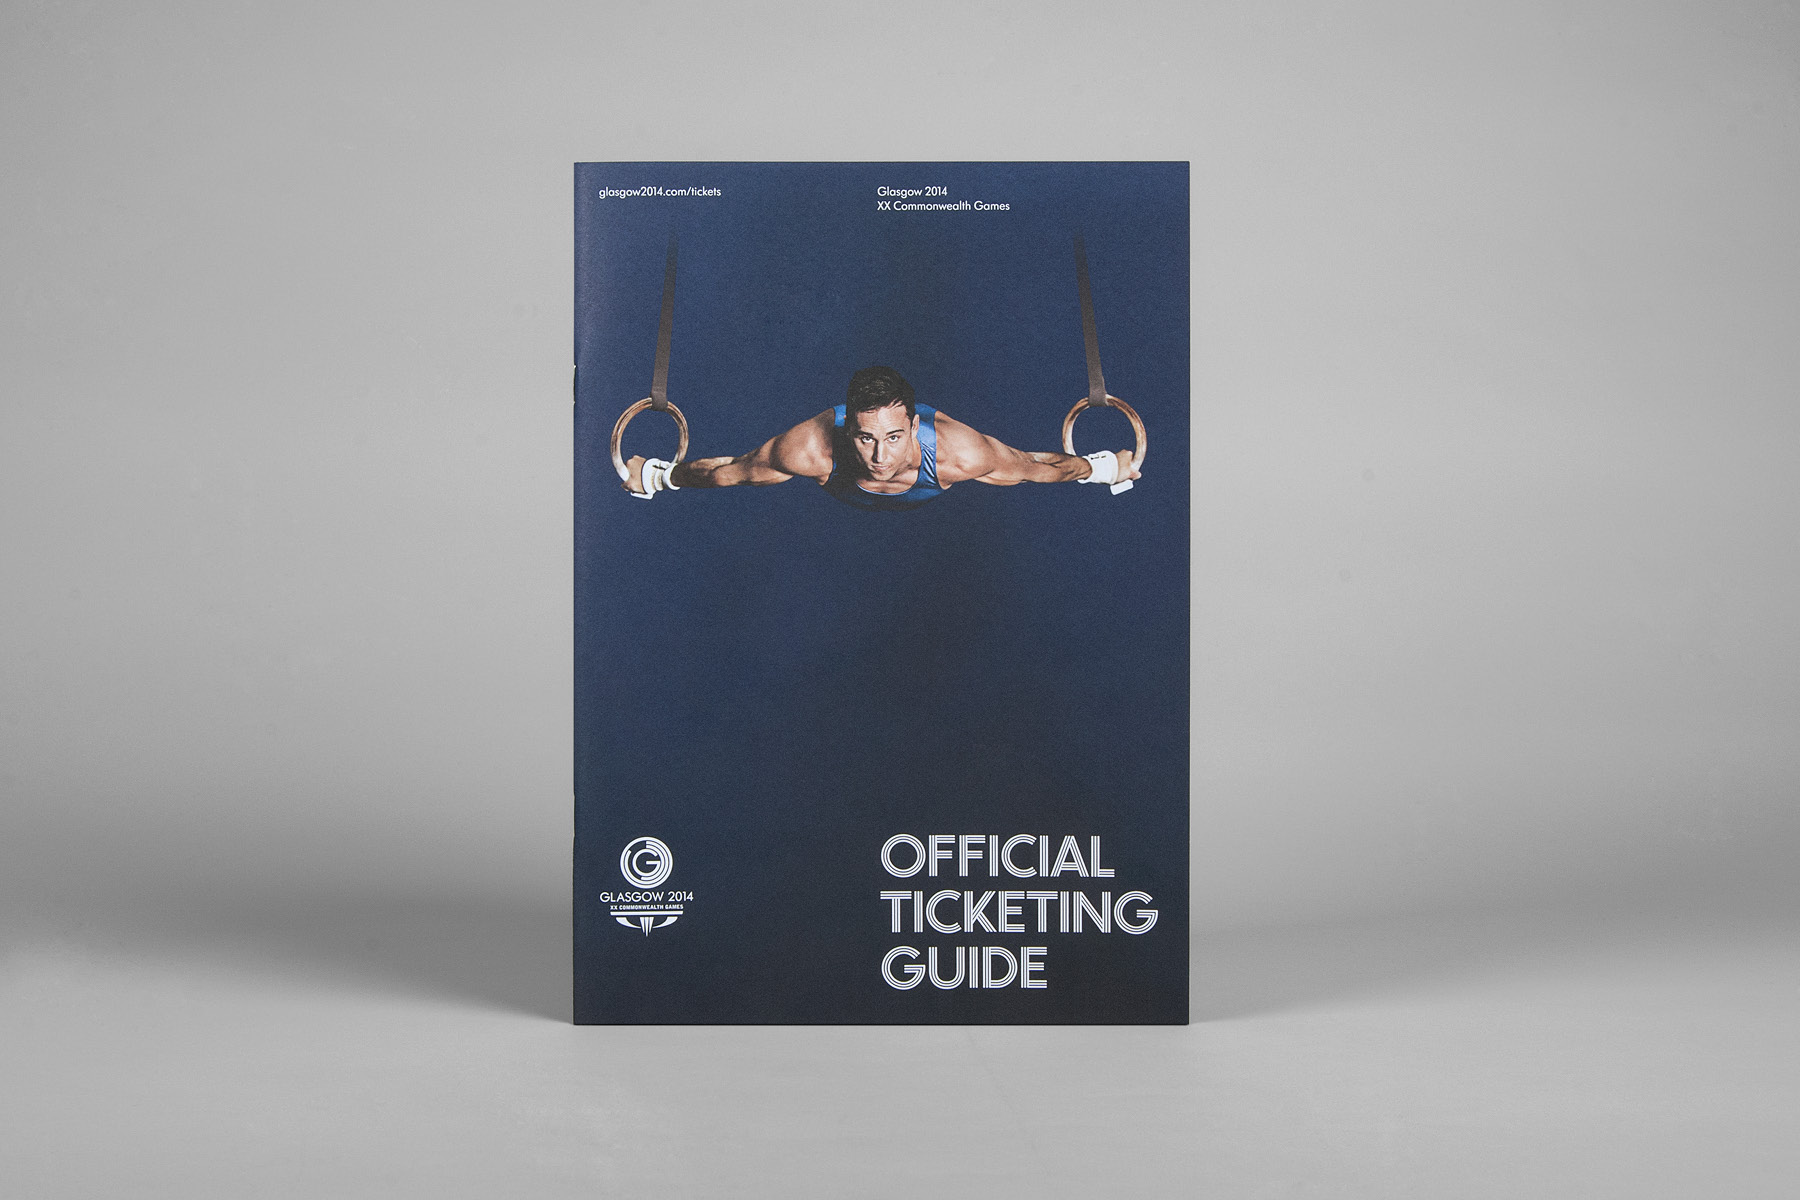 OfficialTicketingGuide01